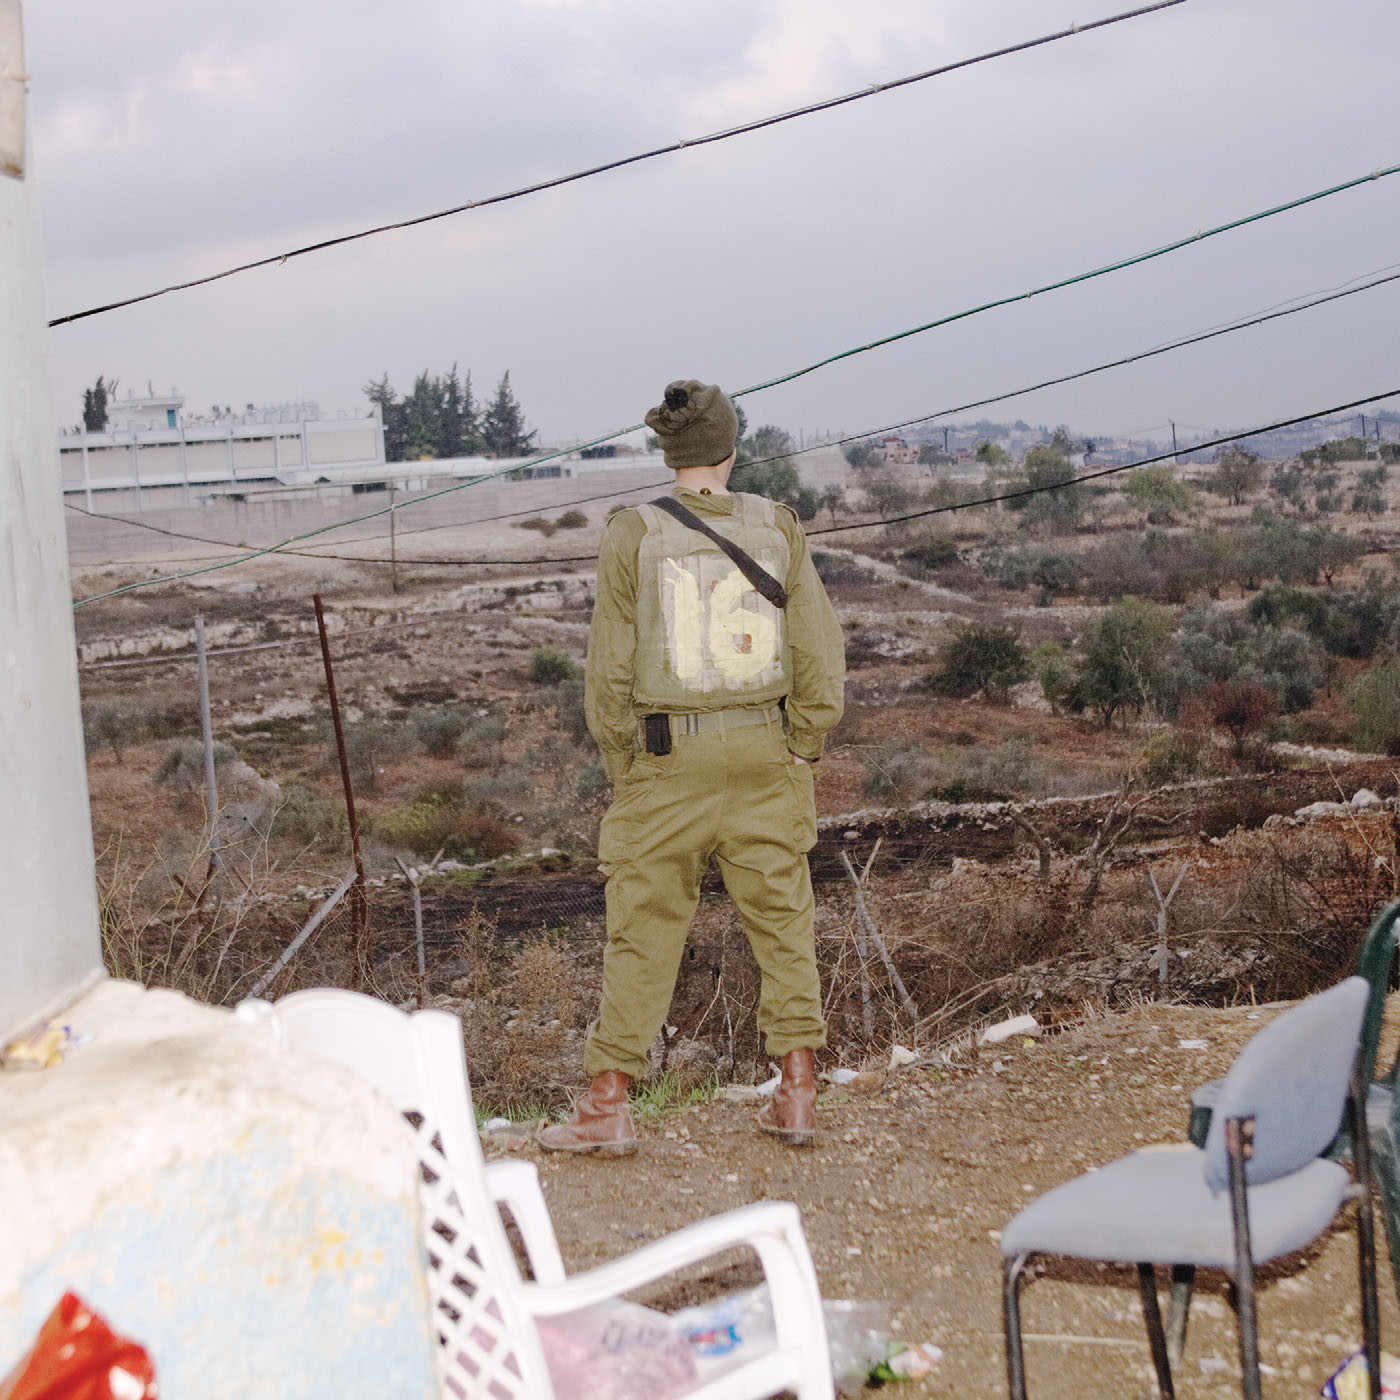 A young man looks out over Beit El, an Israeli settlement on the West Bank, 2008.